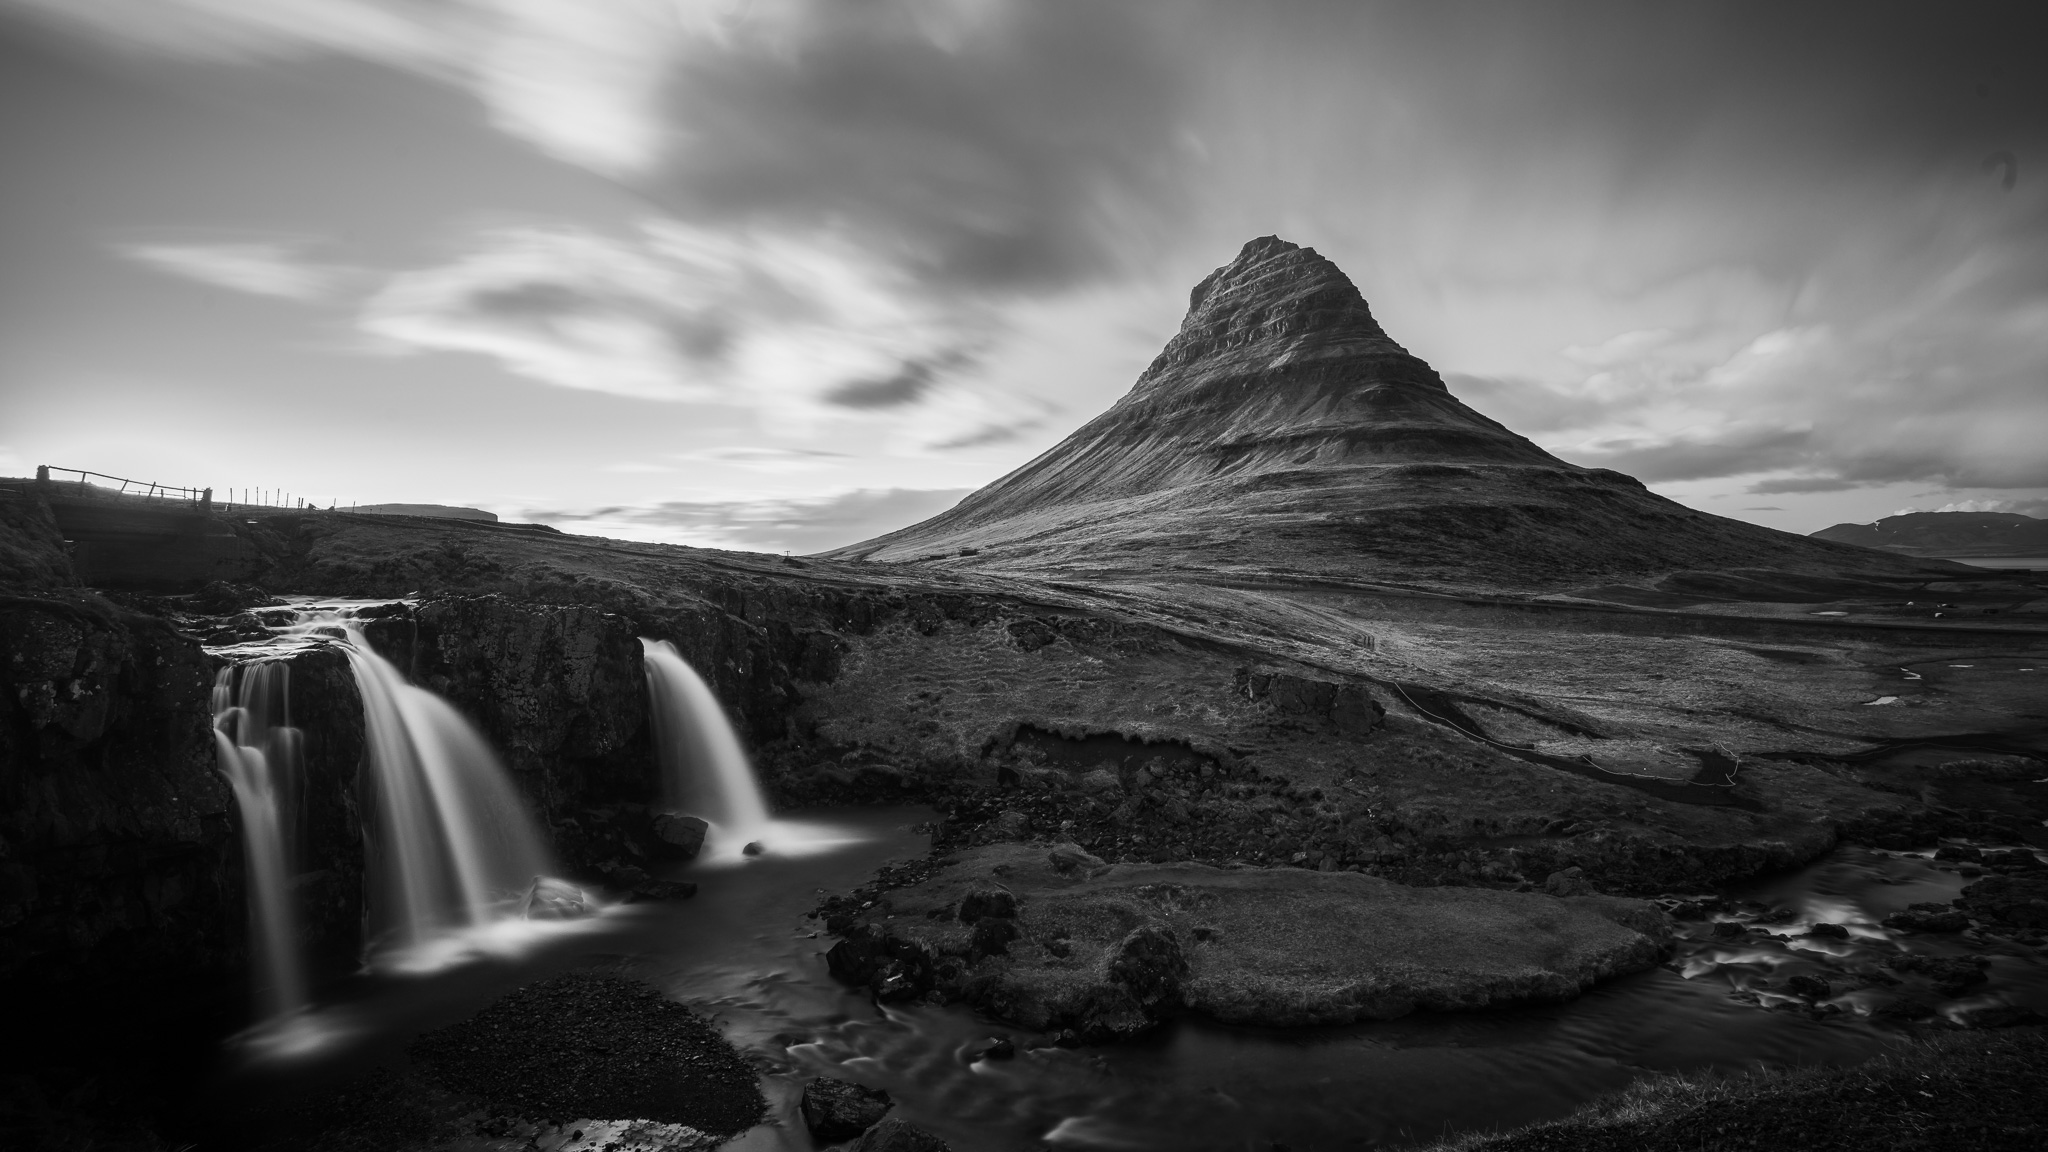 Long exposure of Mt. Kirkjufell and Kirkjufellsfoss in Grundarfjörður of the Snaefellsnes peninsula